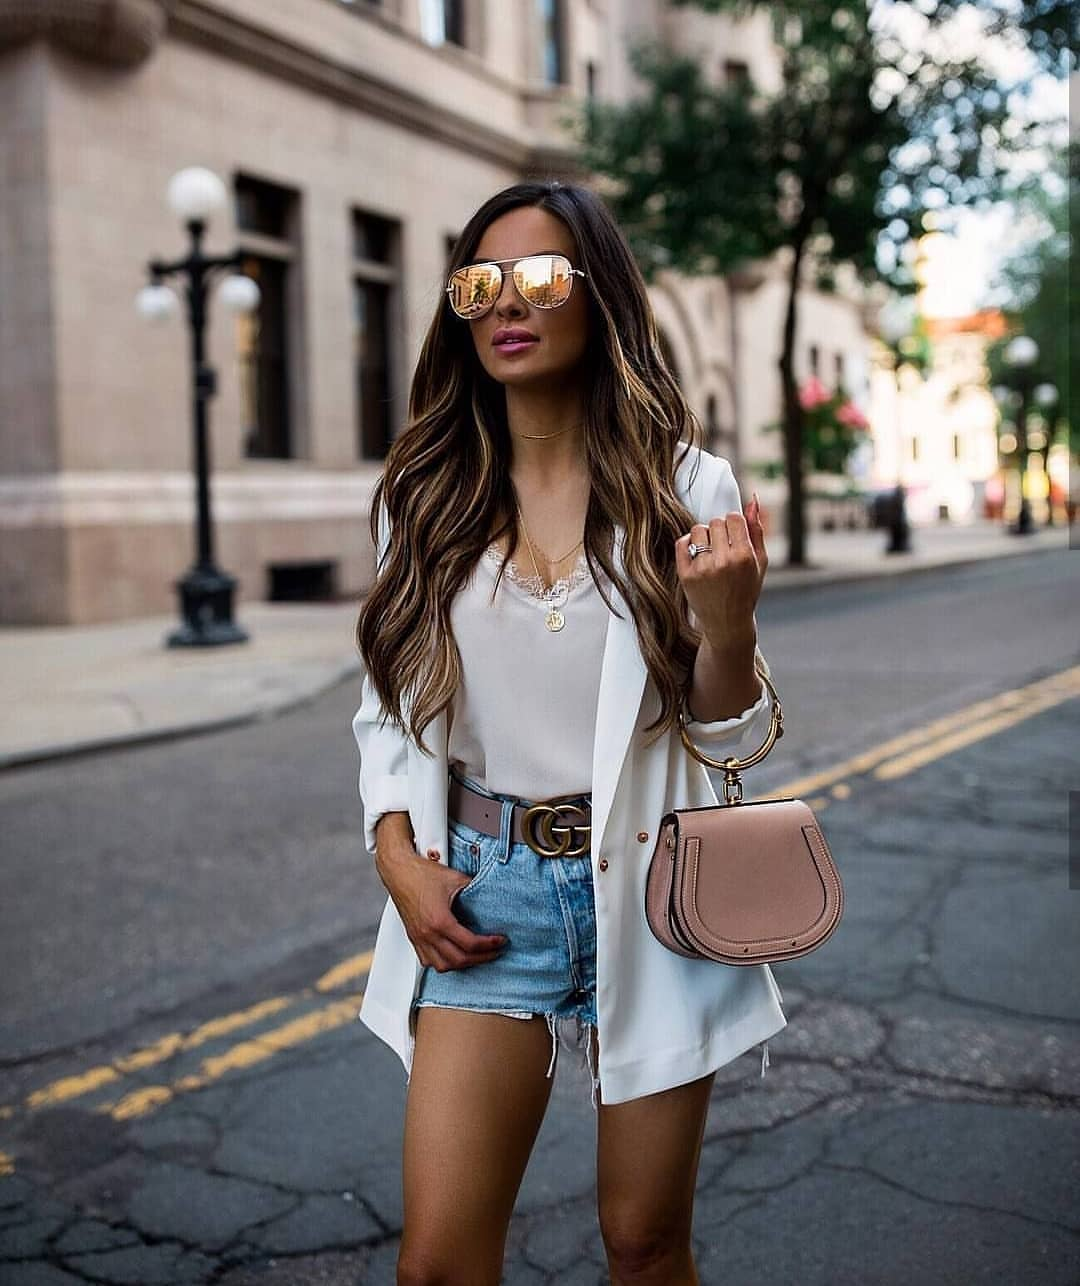 How To Wear White Tailored Blazer With Denim Shorts This Summer 2019